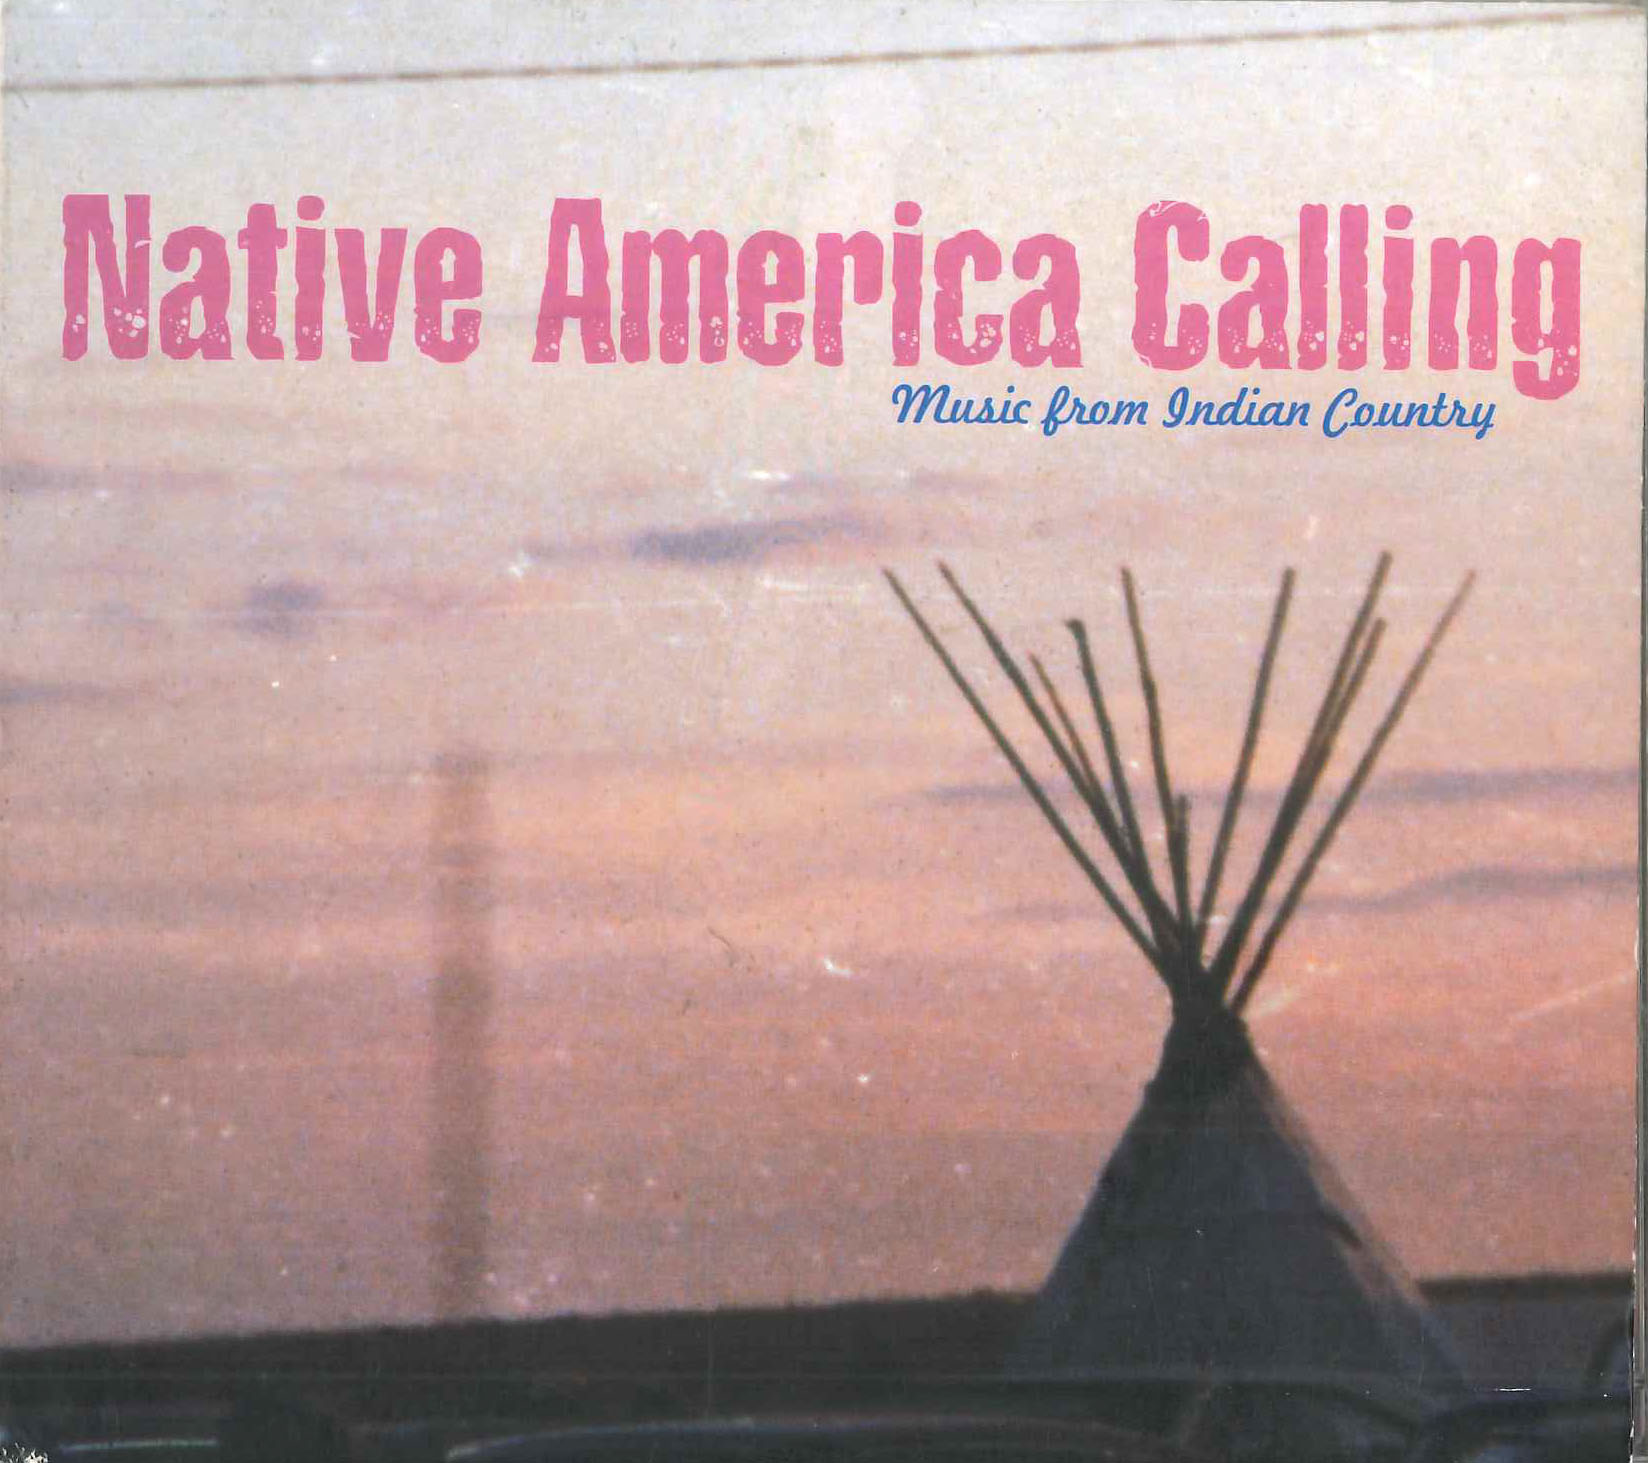 CD: Native America Calling by Behind The Mirror